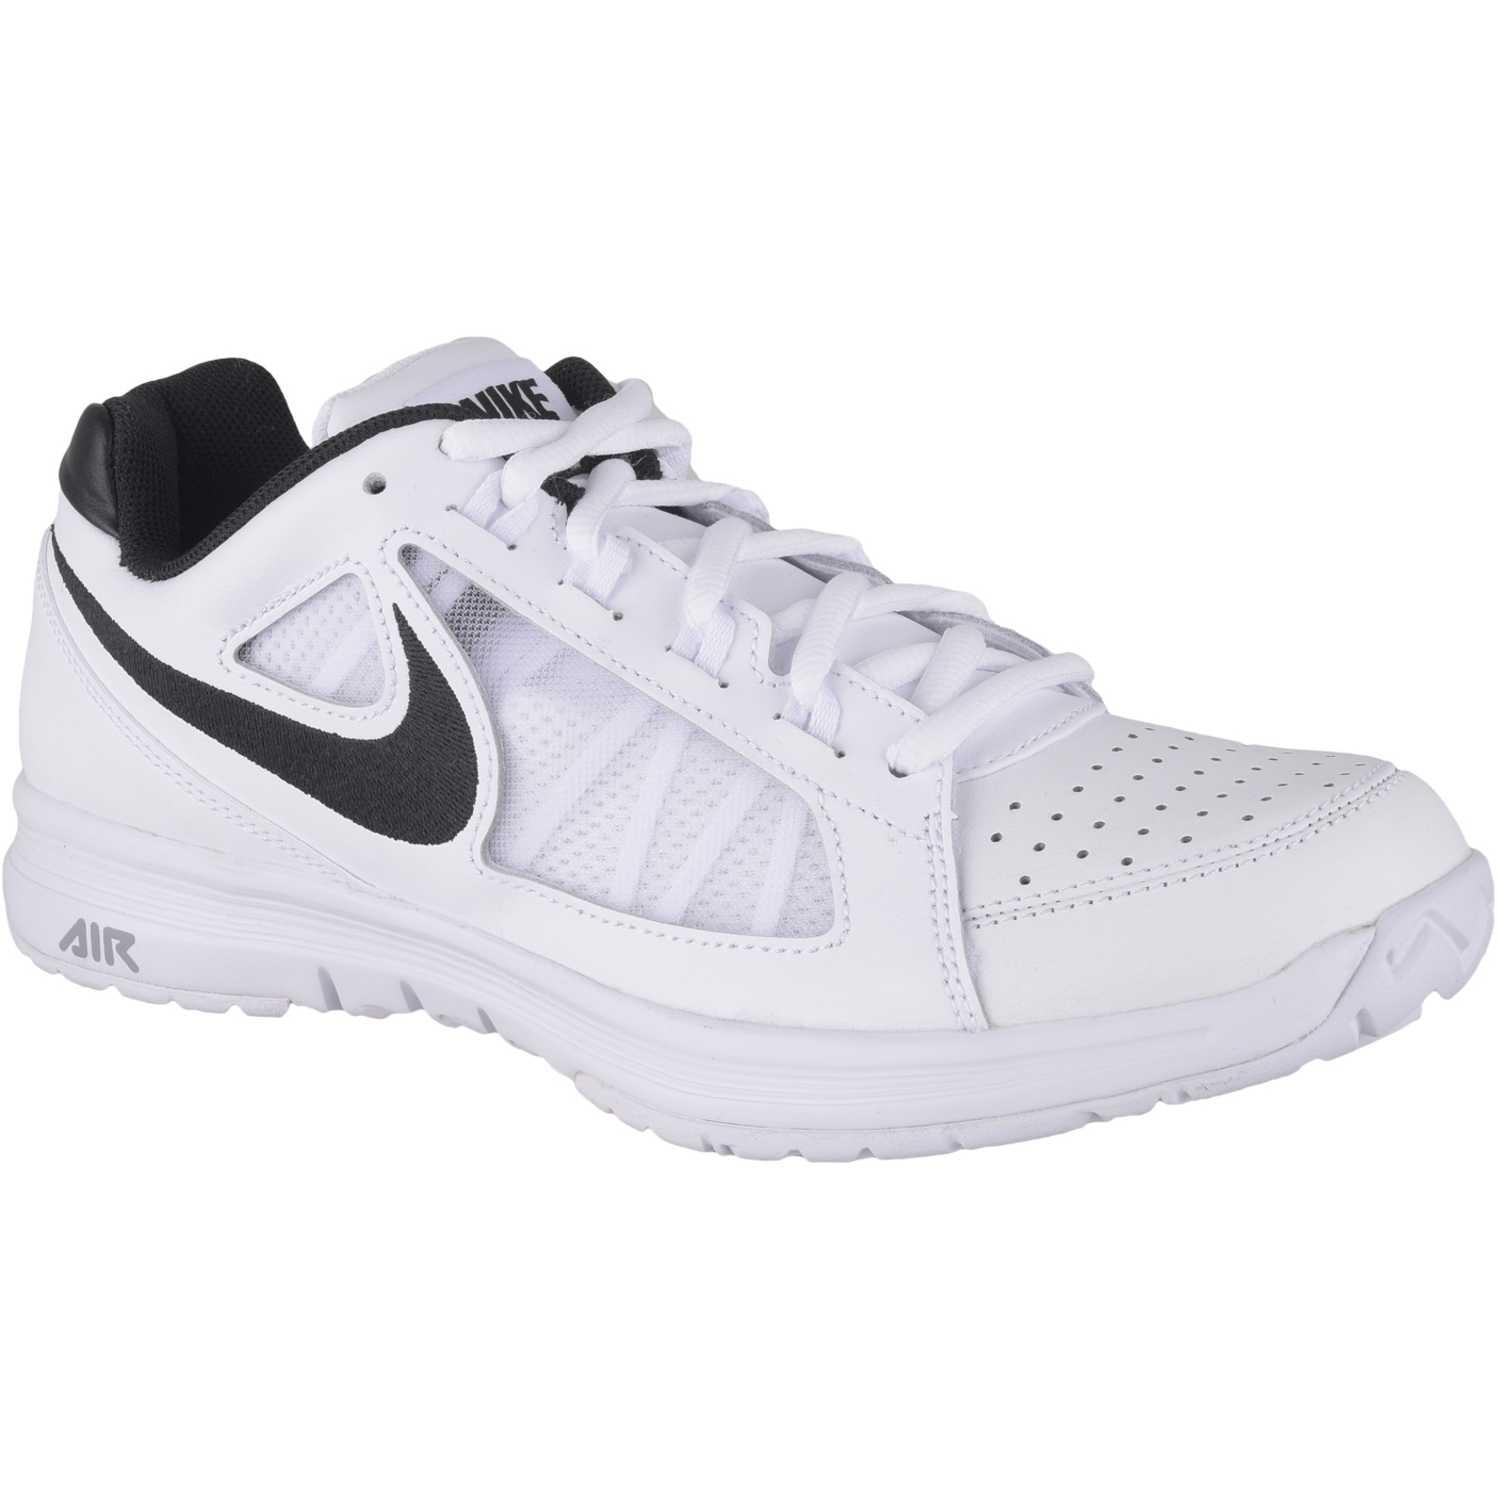 finest selection a00e7 cdbc6 Zapatilla de Hombre Nike Blanco   negro air vapor ace